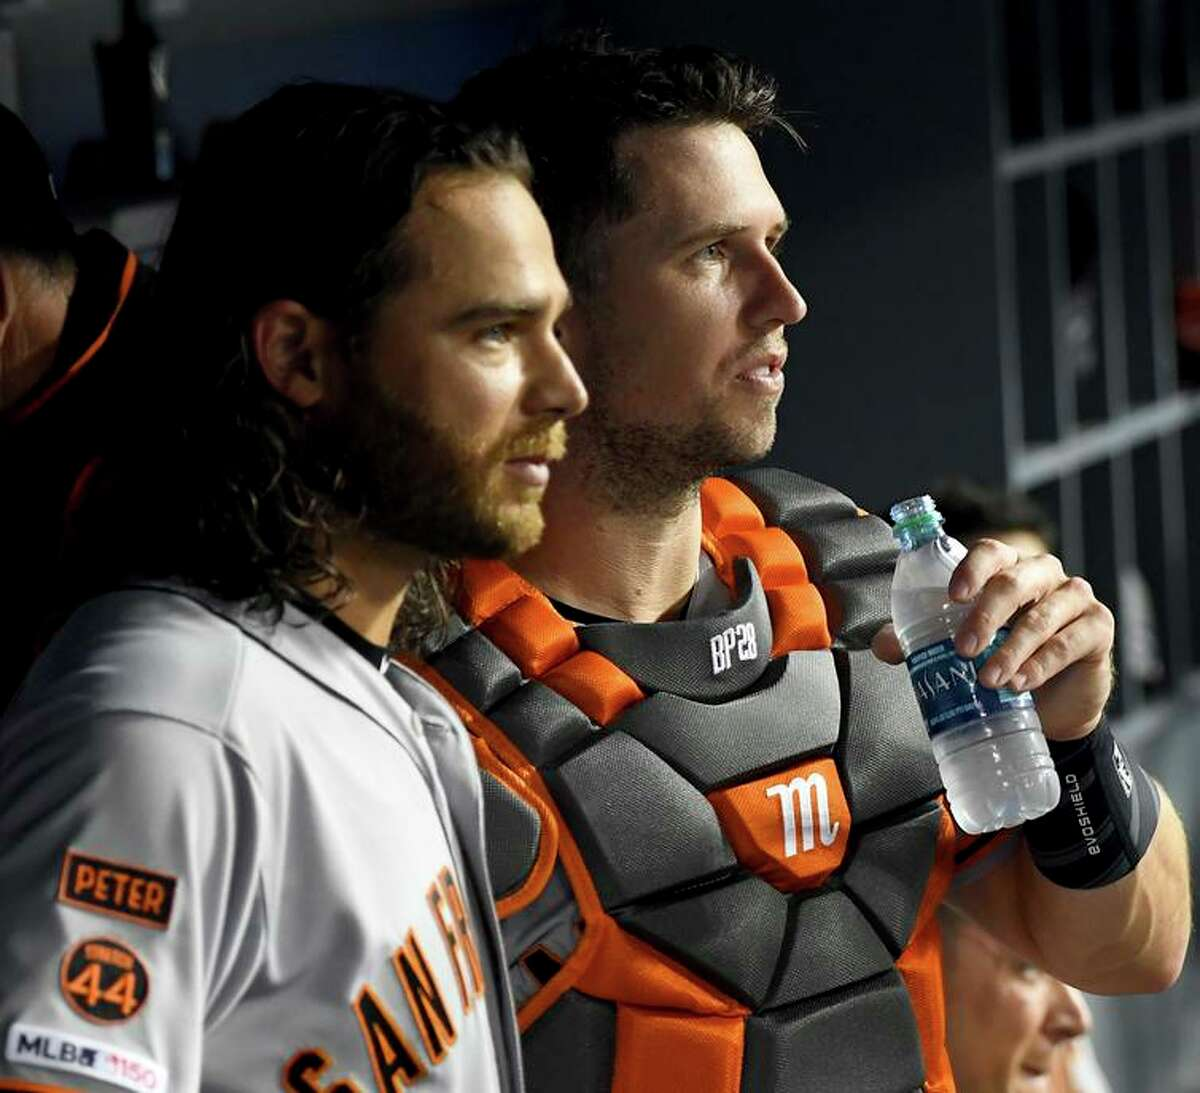 LOS ANGELES, CA - APRIL 01: Brandon Crawford #35 and Buster Posey #28 of the San Francisco Giants look on from the dugout during the game against the Los Angeles Dodgers at Dodger Stadium on April 1, 2019 in Los Angeles, California. (Photo by Jayne Kamin-Oncea/Getty Images)